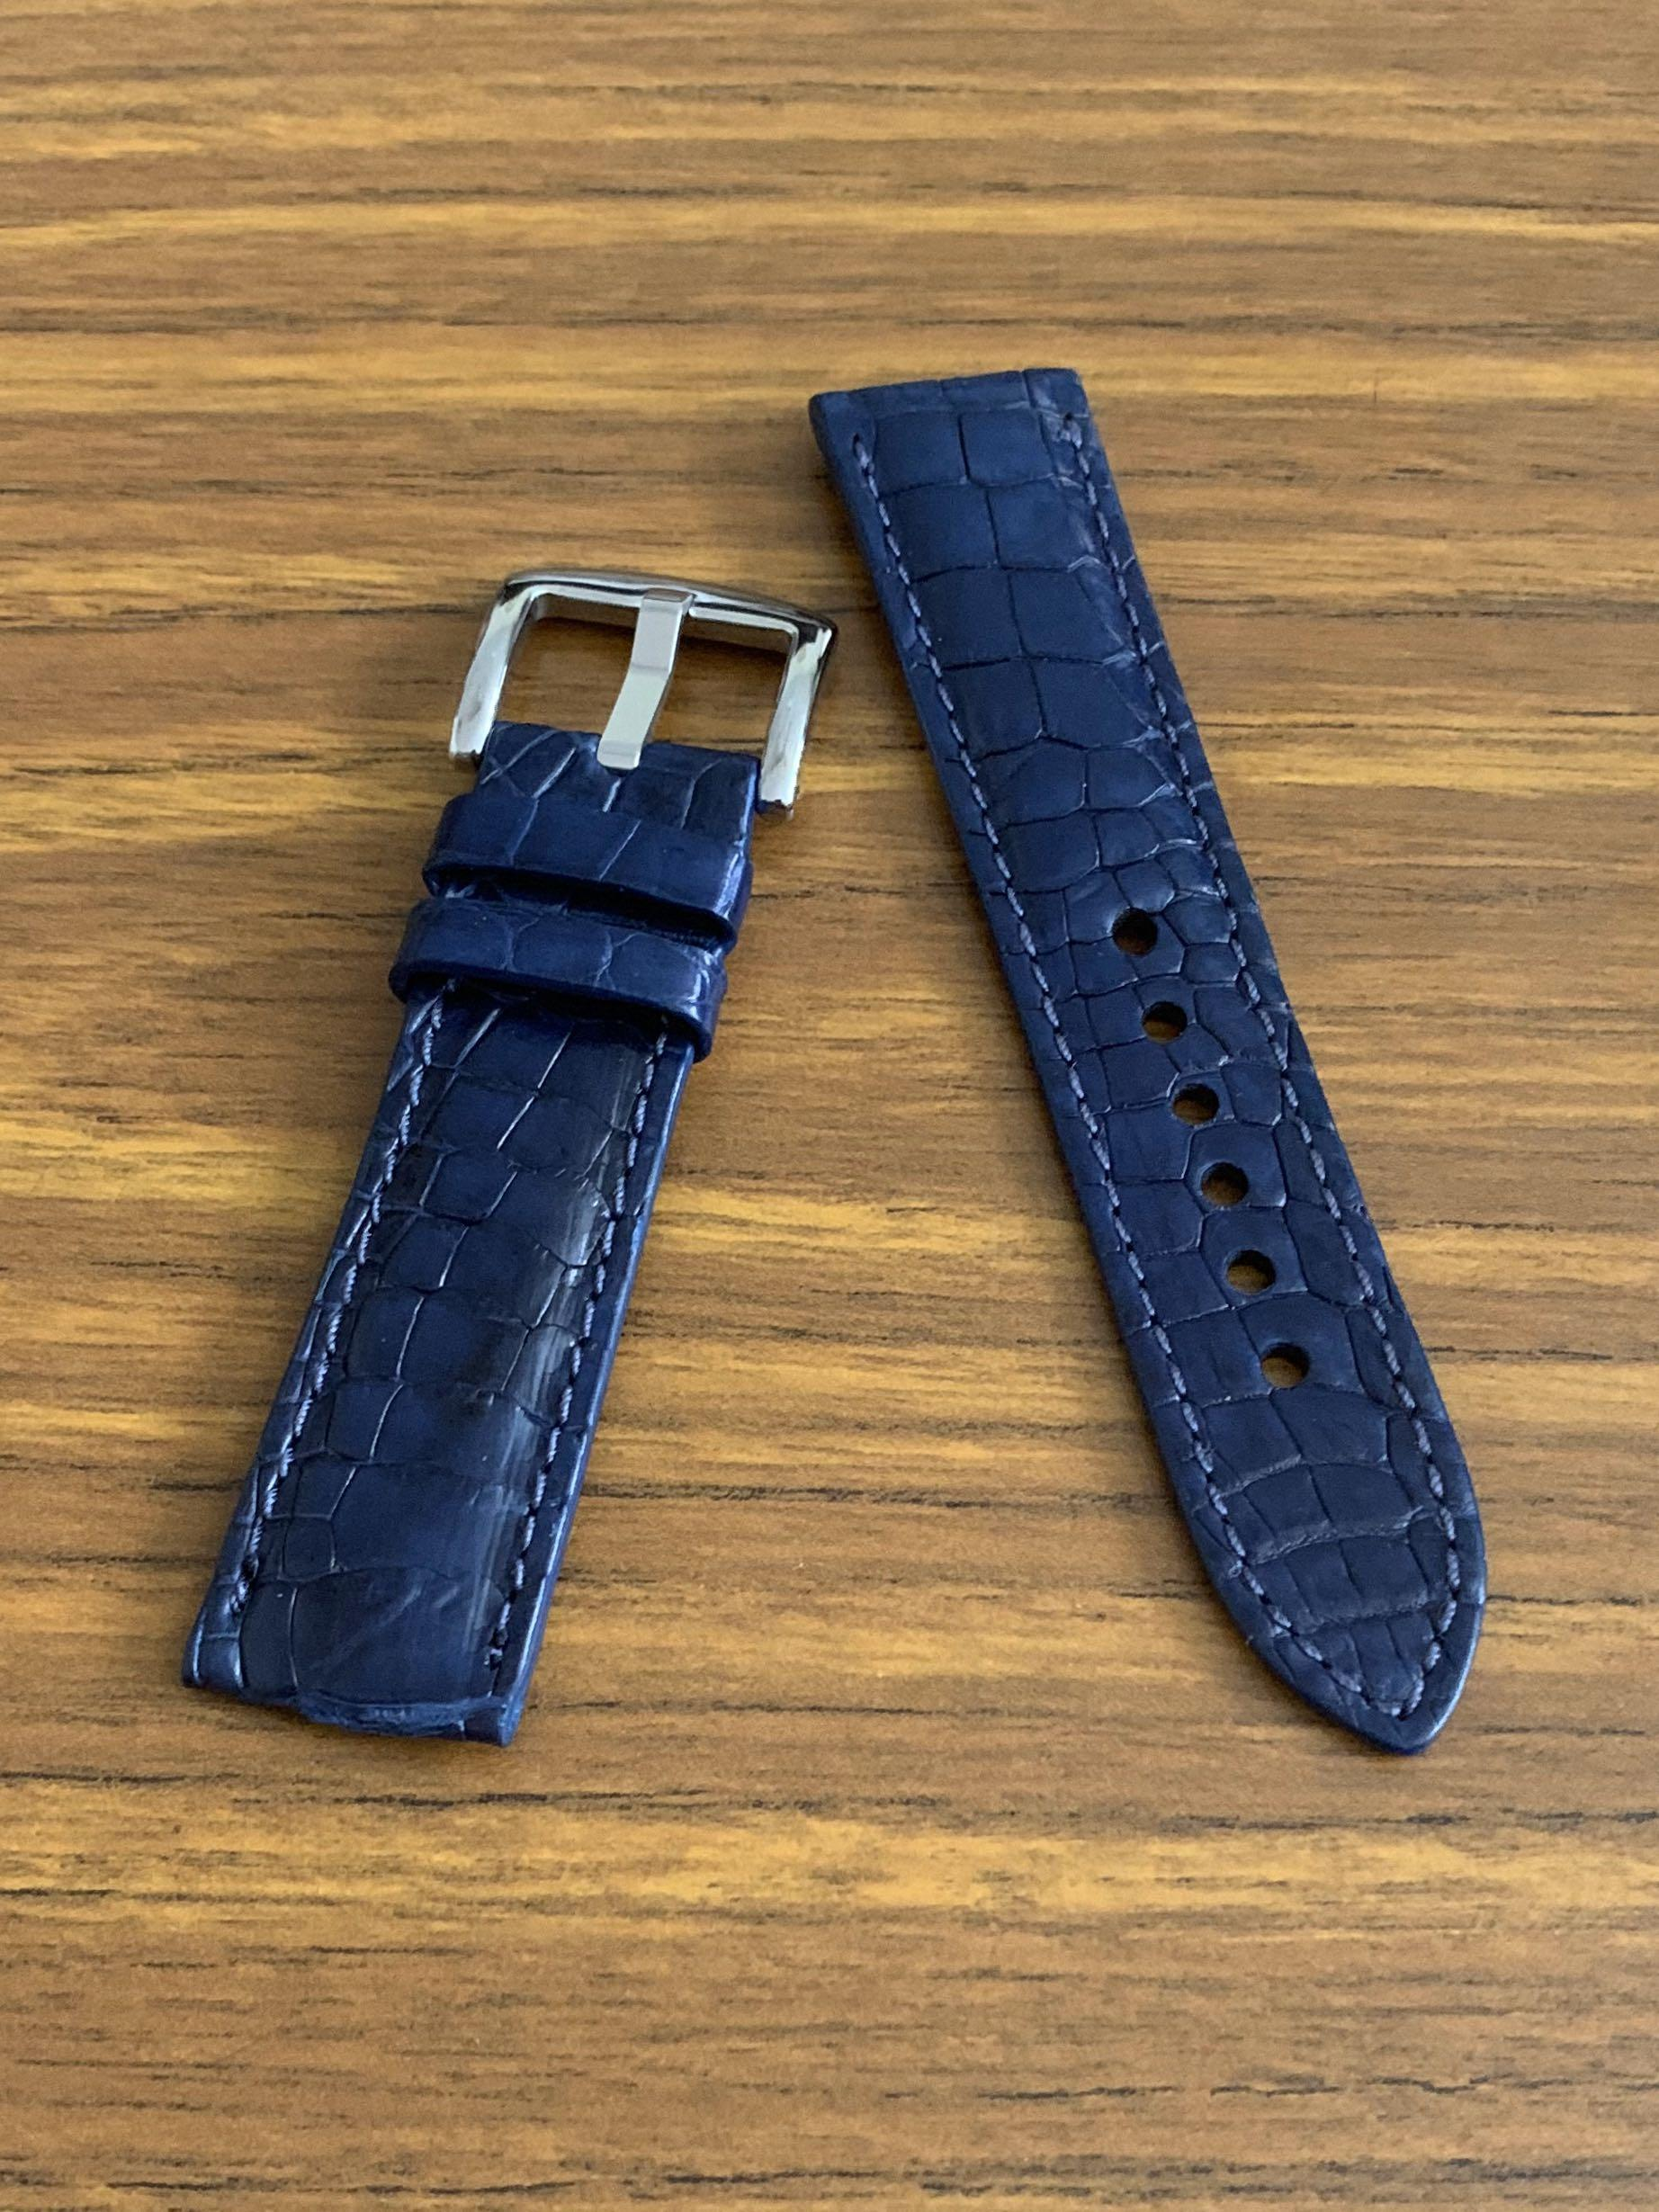 [DISCOUNTED] 22mm/20mm Authentic Monaco Blue Crocodile 🐊 Alligator Watch Strap - (multi-tiled grains - gorgeous croc grains, only one like this, once sold no more!! 👍🏻😊)     Standard length- L:120mm S:75mm - LAST SUCH PIECE- CB SALE!!😊